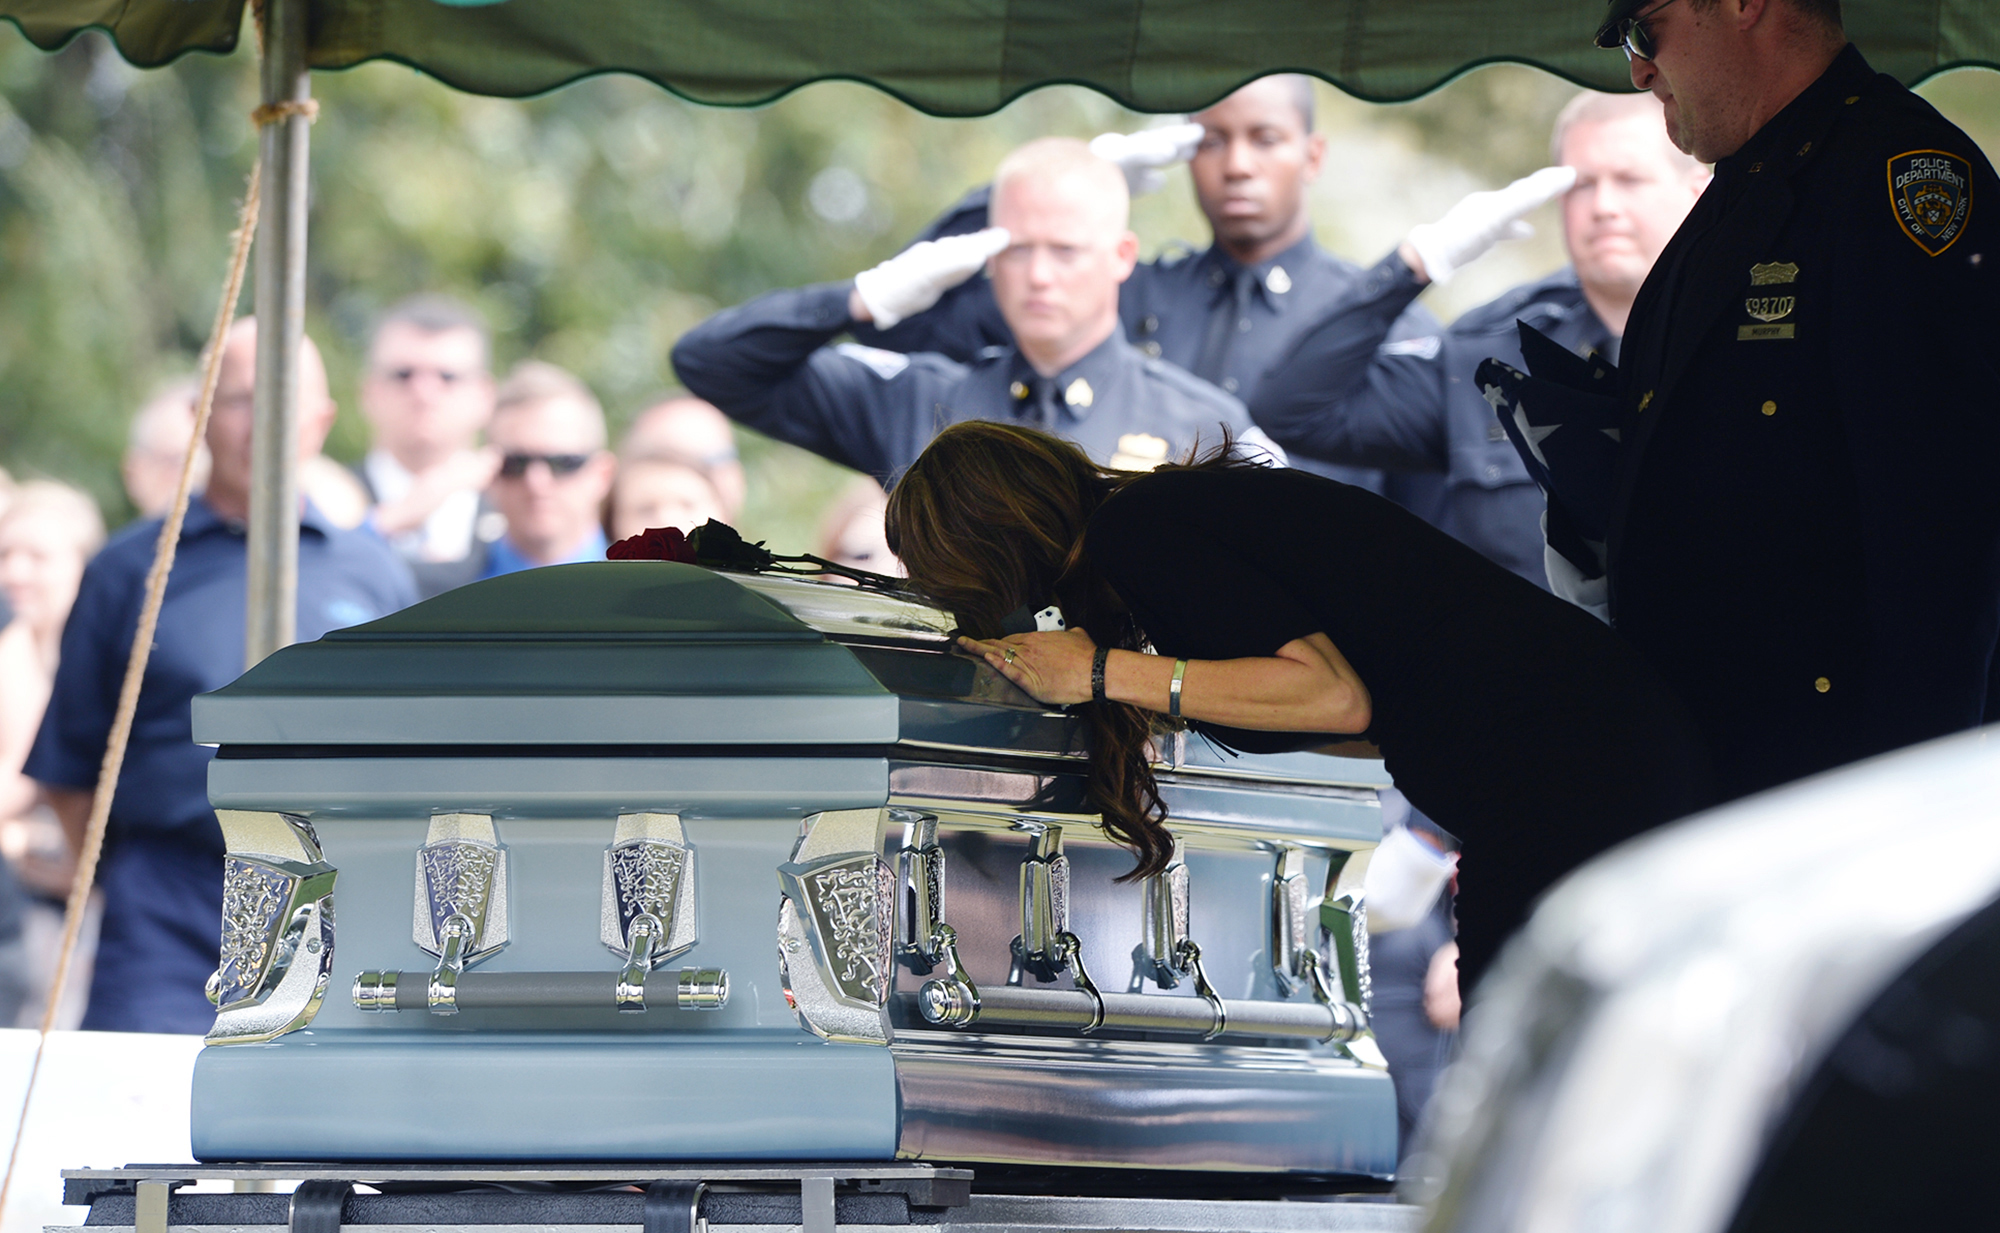 The wife of Greenville City Police Officer Allen Jacobs leans over his casket at the graveside service at Coleman Memorial Cemetery in Travelers Rest.